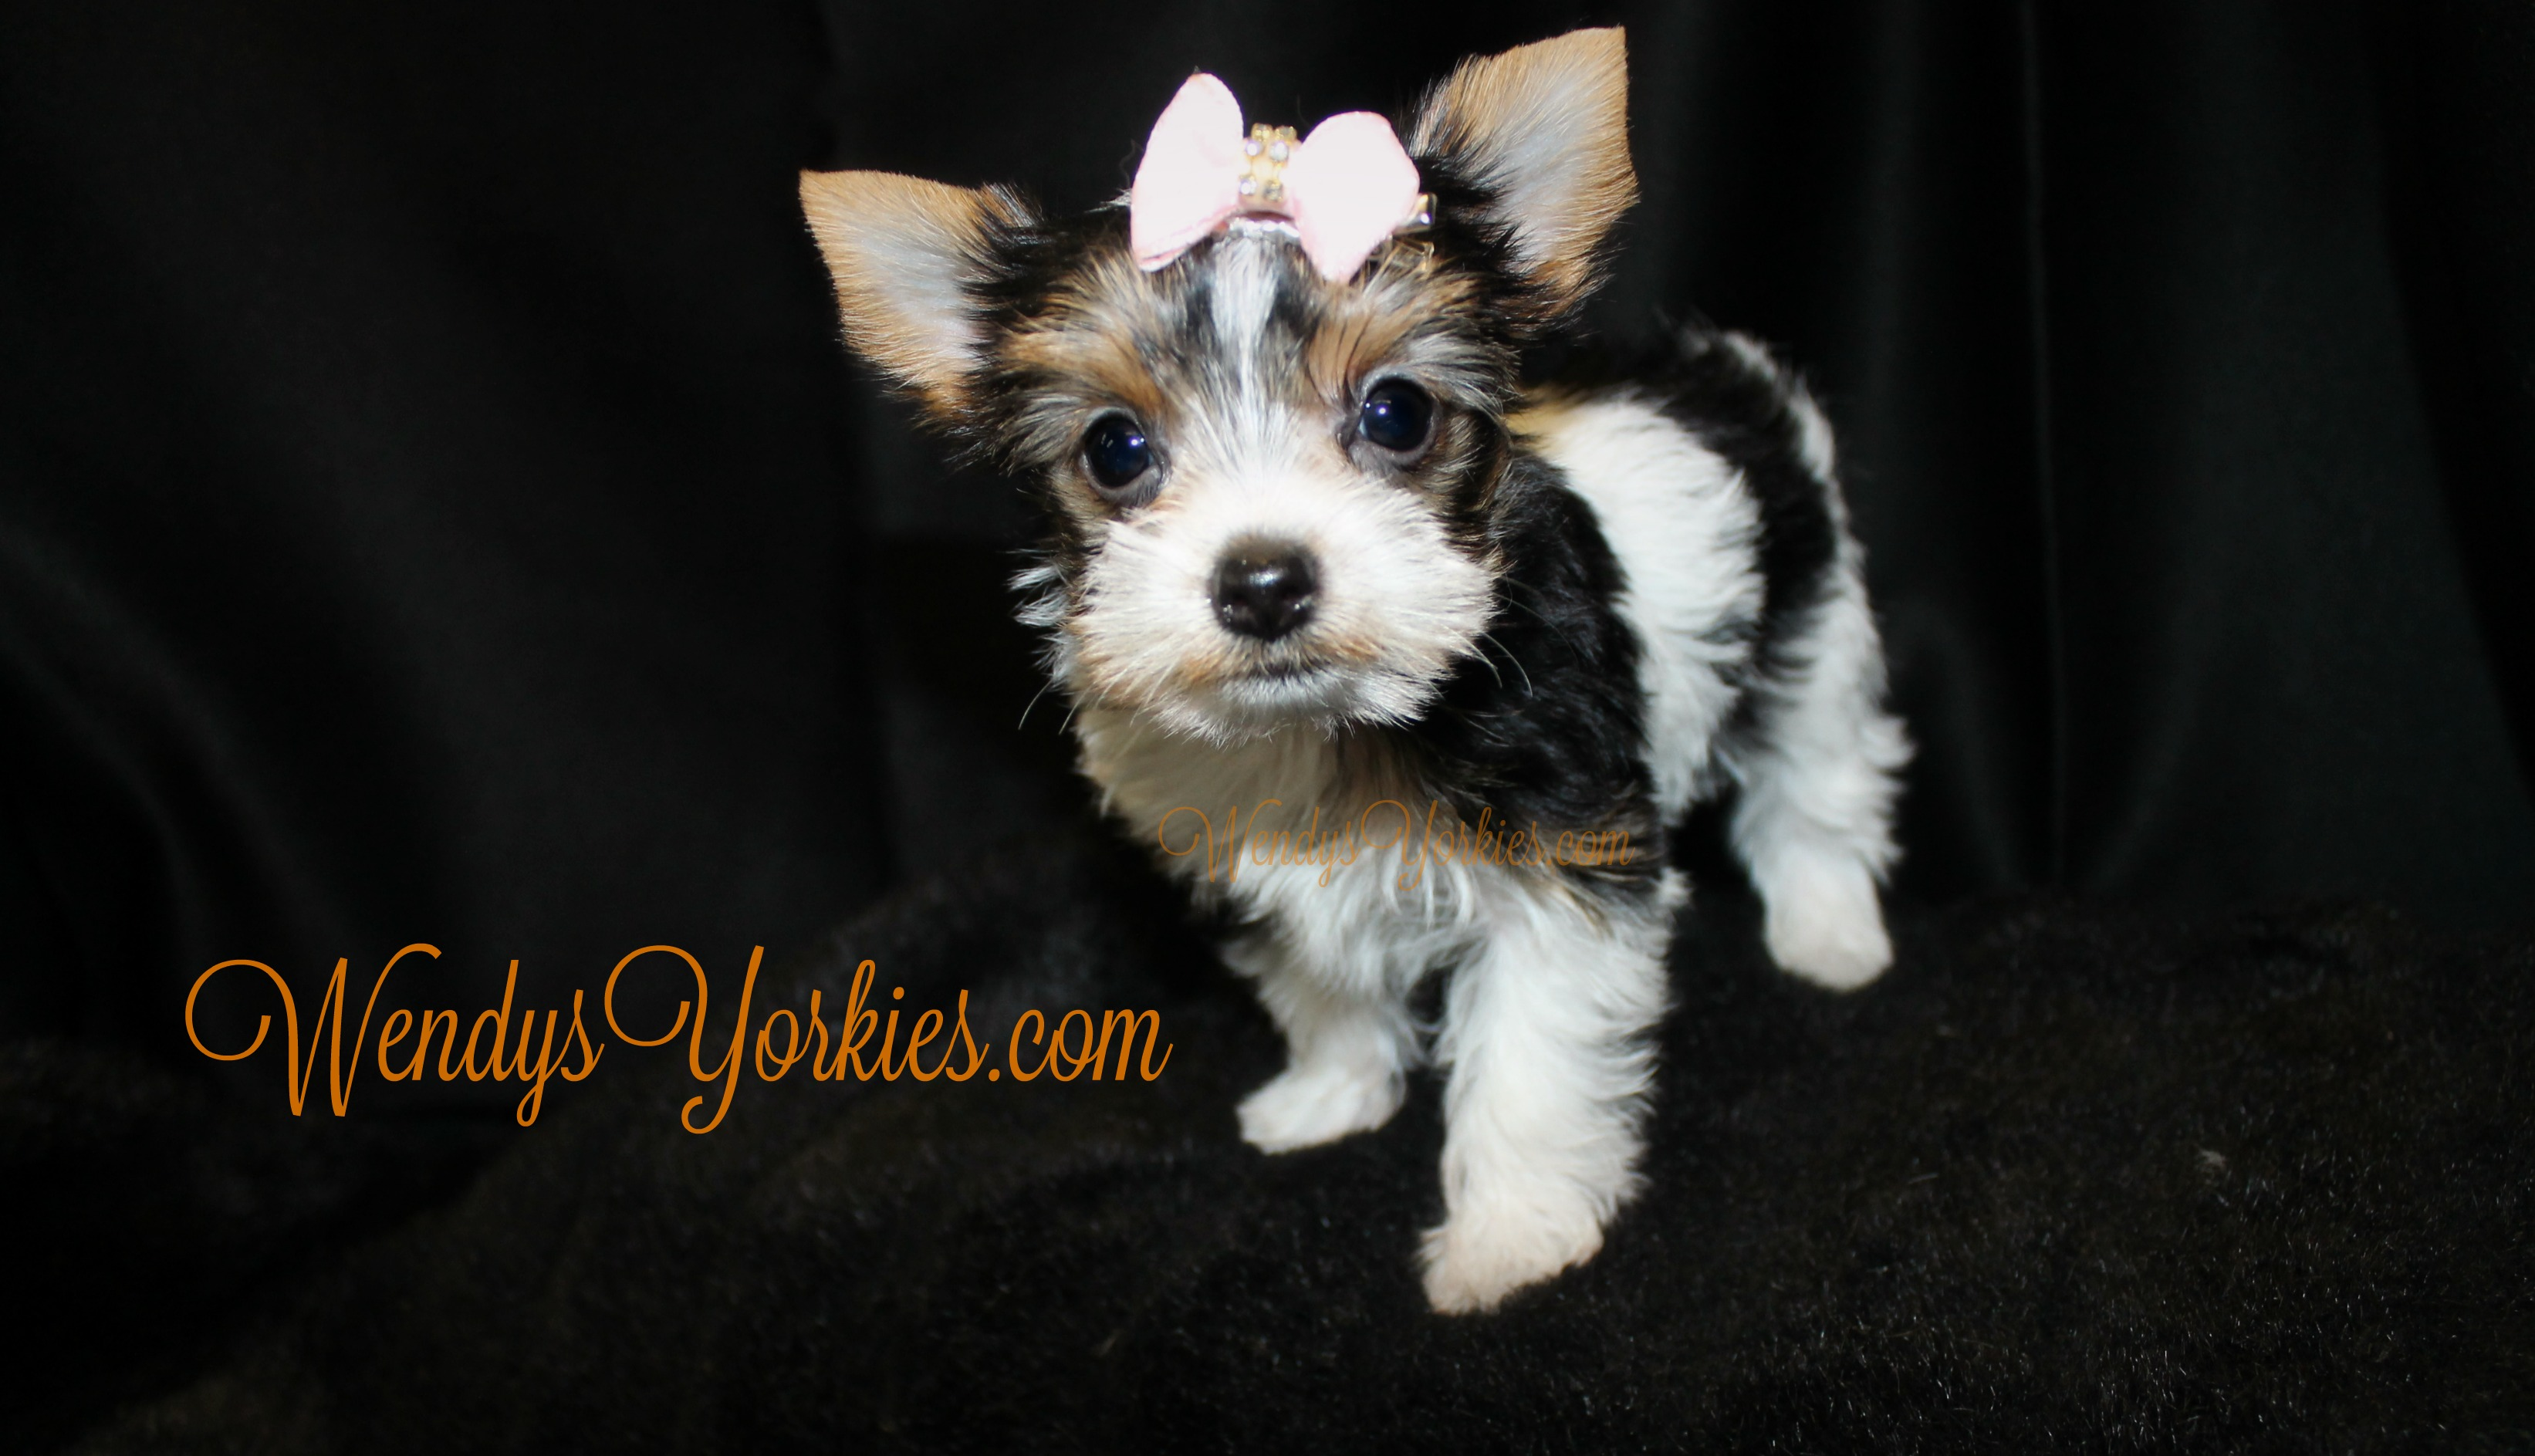 Teacup Parti Yorkie puppy for sale, WendysYorkies.com, Daisy pf